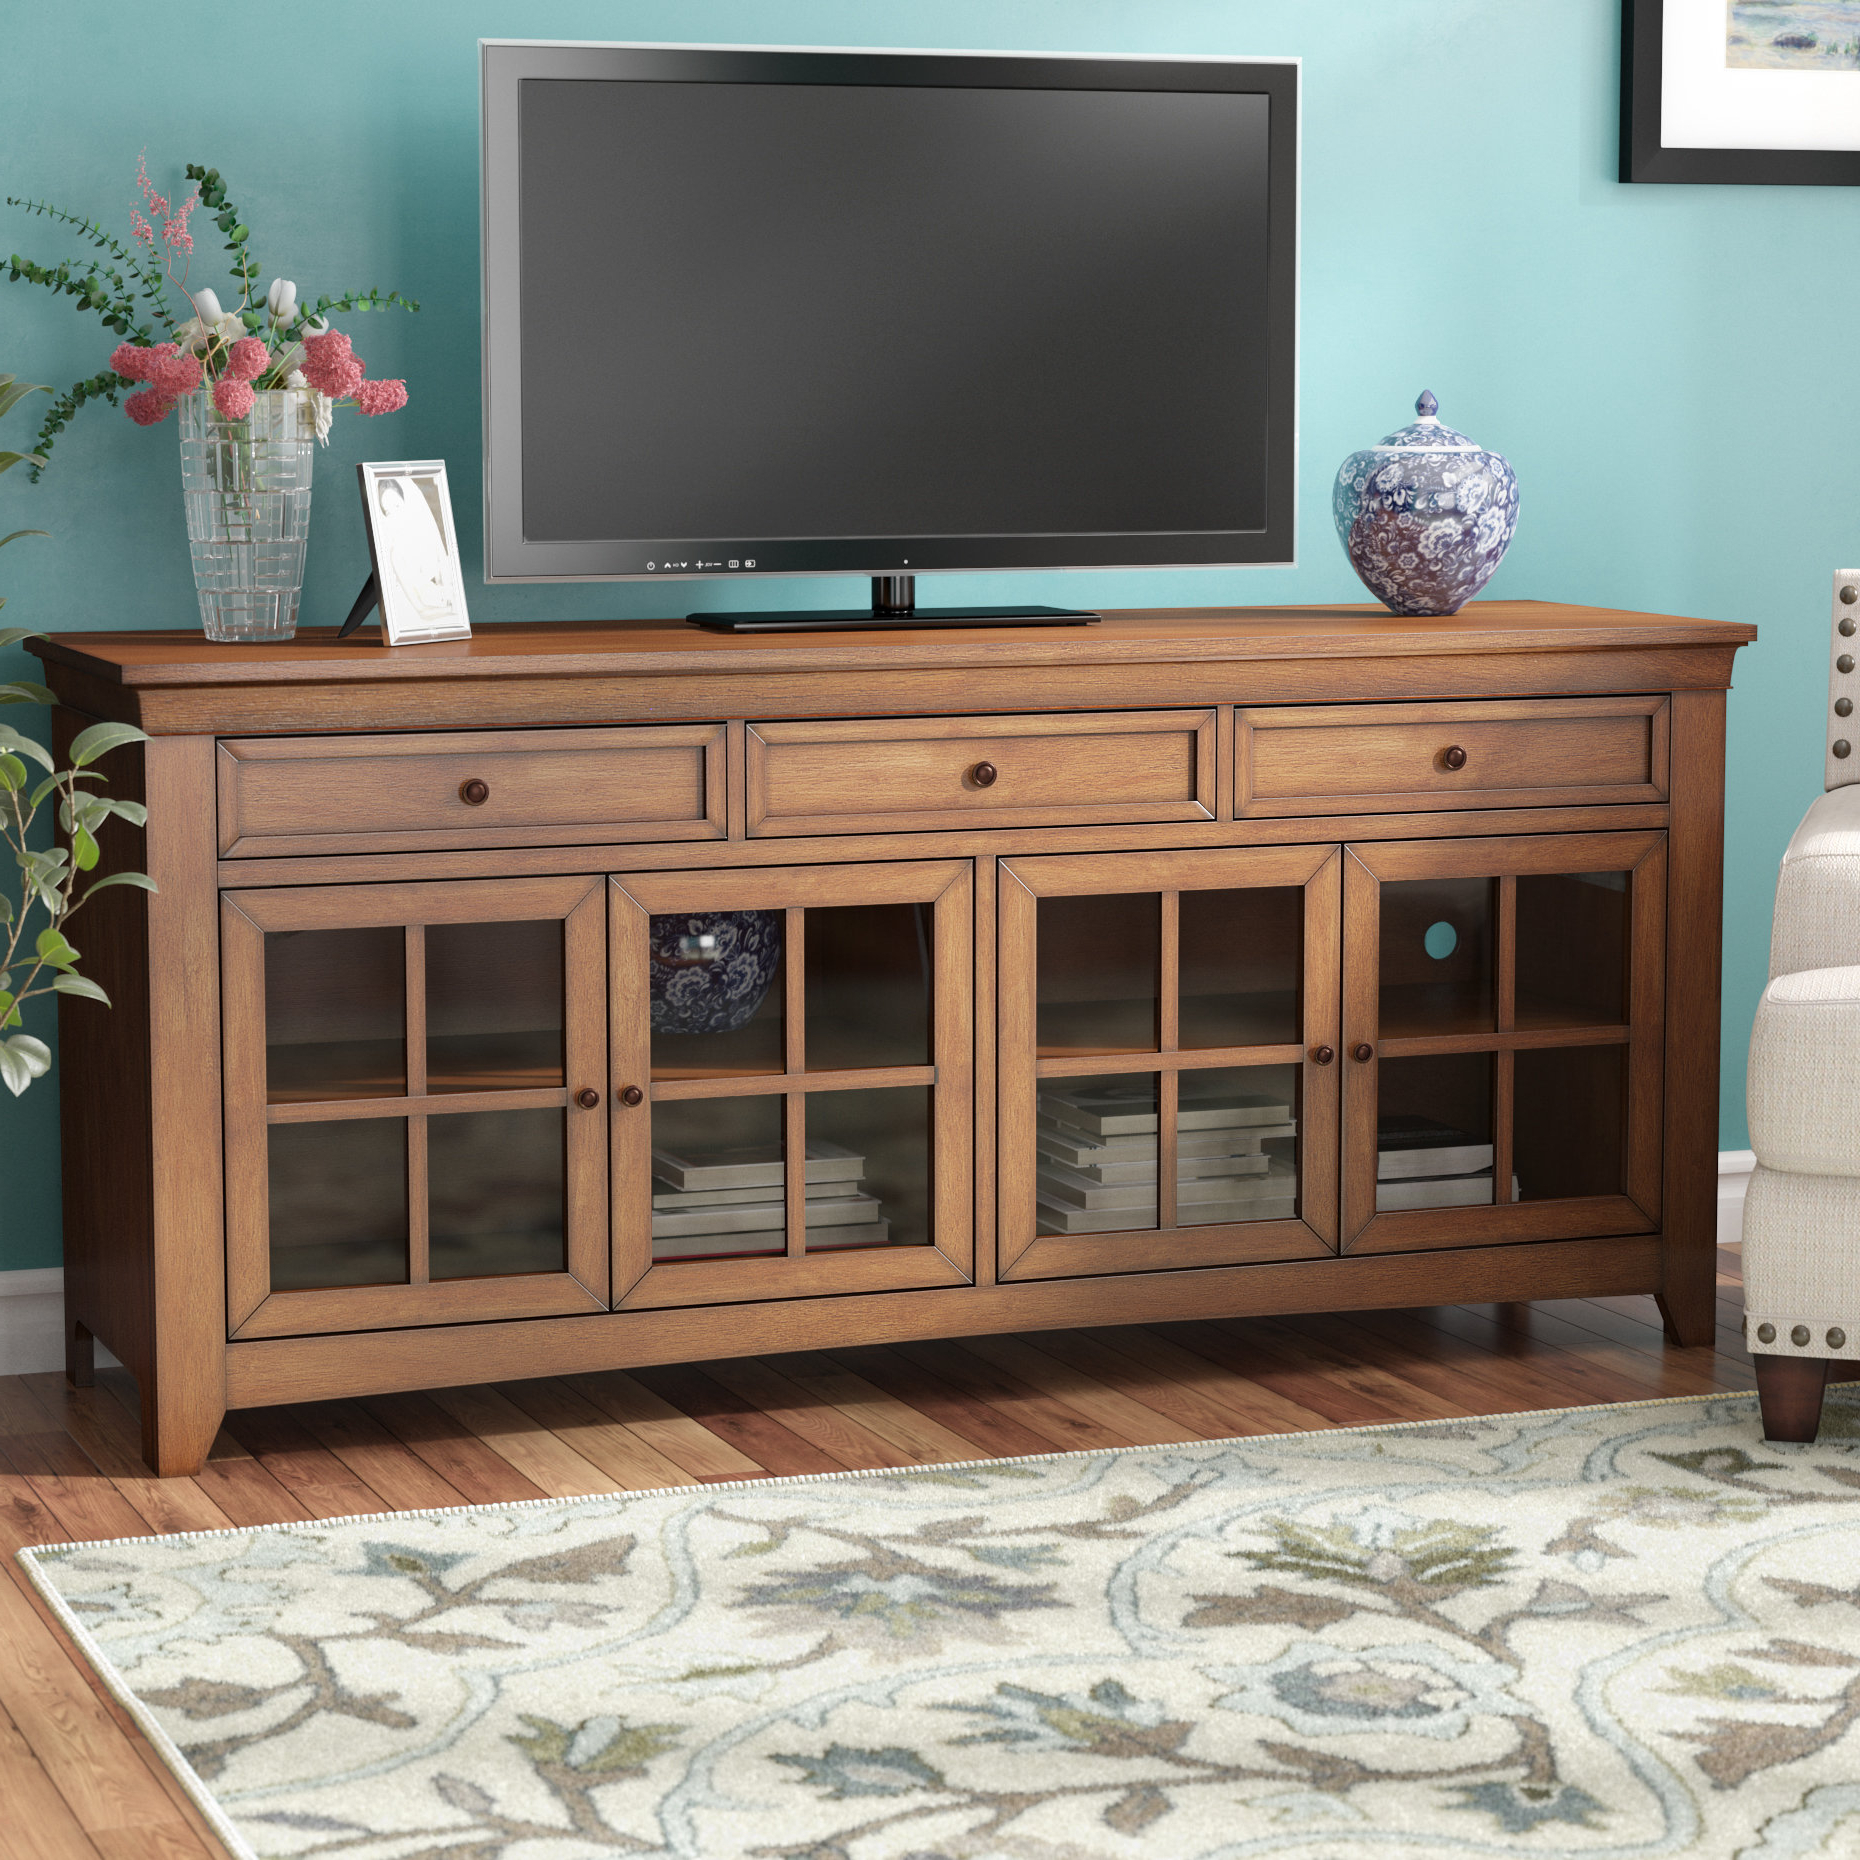 "Colefax Vintage Tv Stands For Tvs Up To 78"" With Regard To Widely Used Alcott Hill Nido Tv Stand For Tvs Up To 70"" (View 17 of 20)"